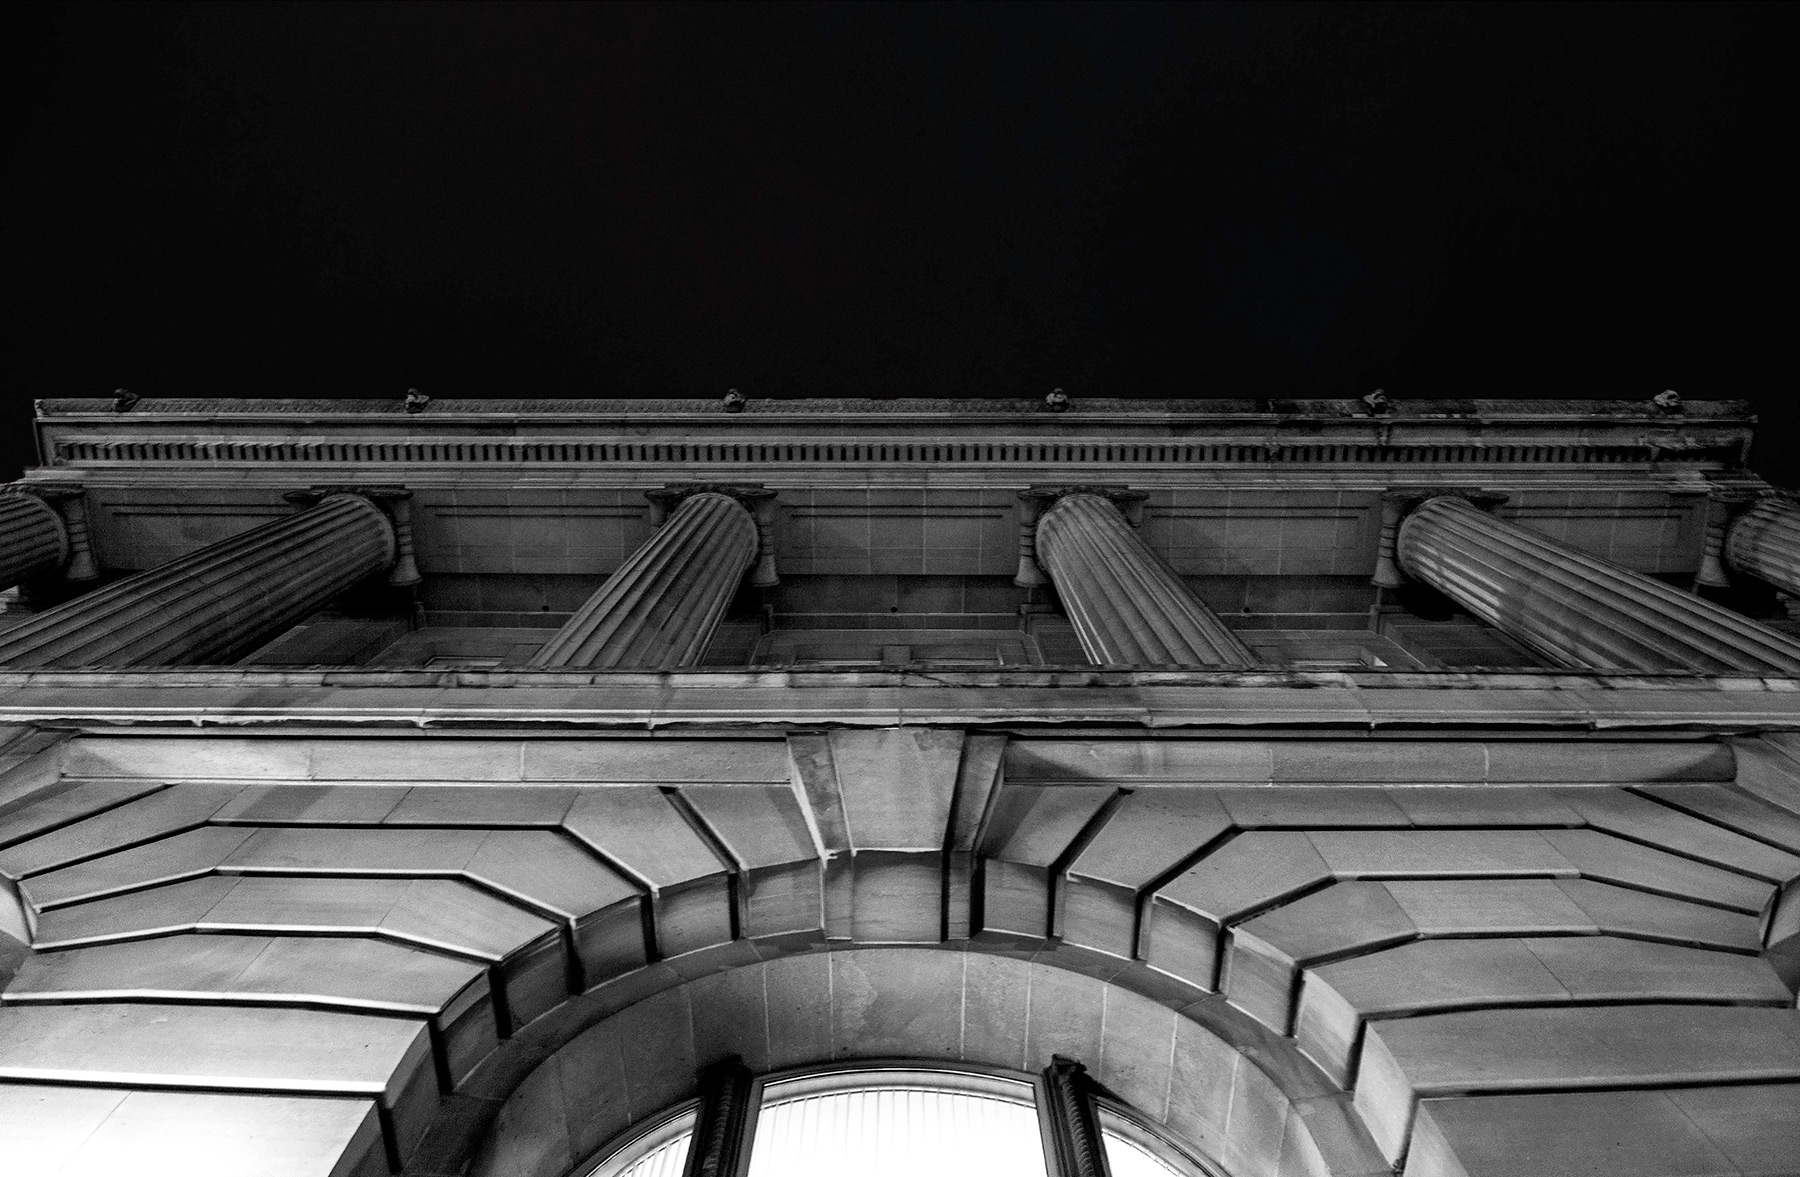 20150531.Ionic columns rise above the entrance of Toronto's icon